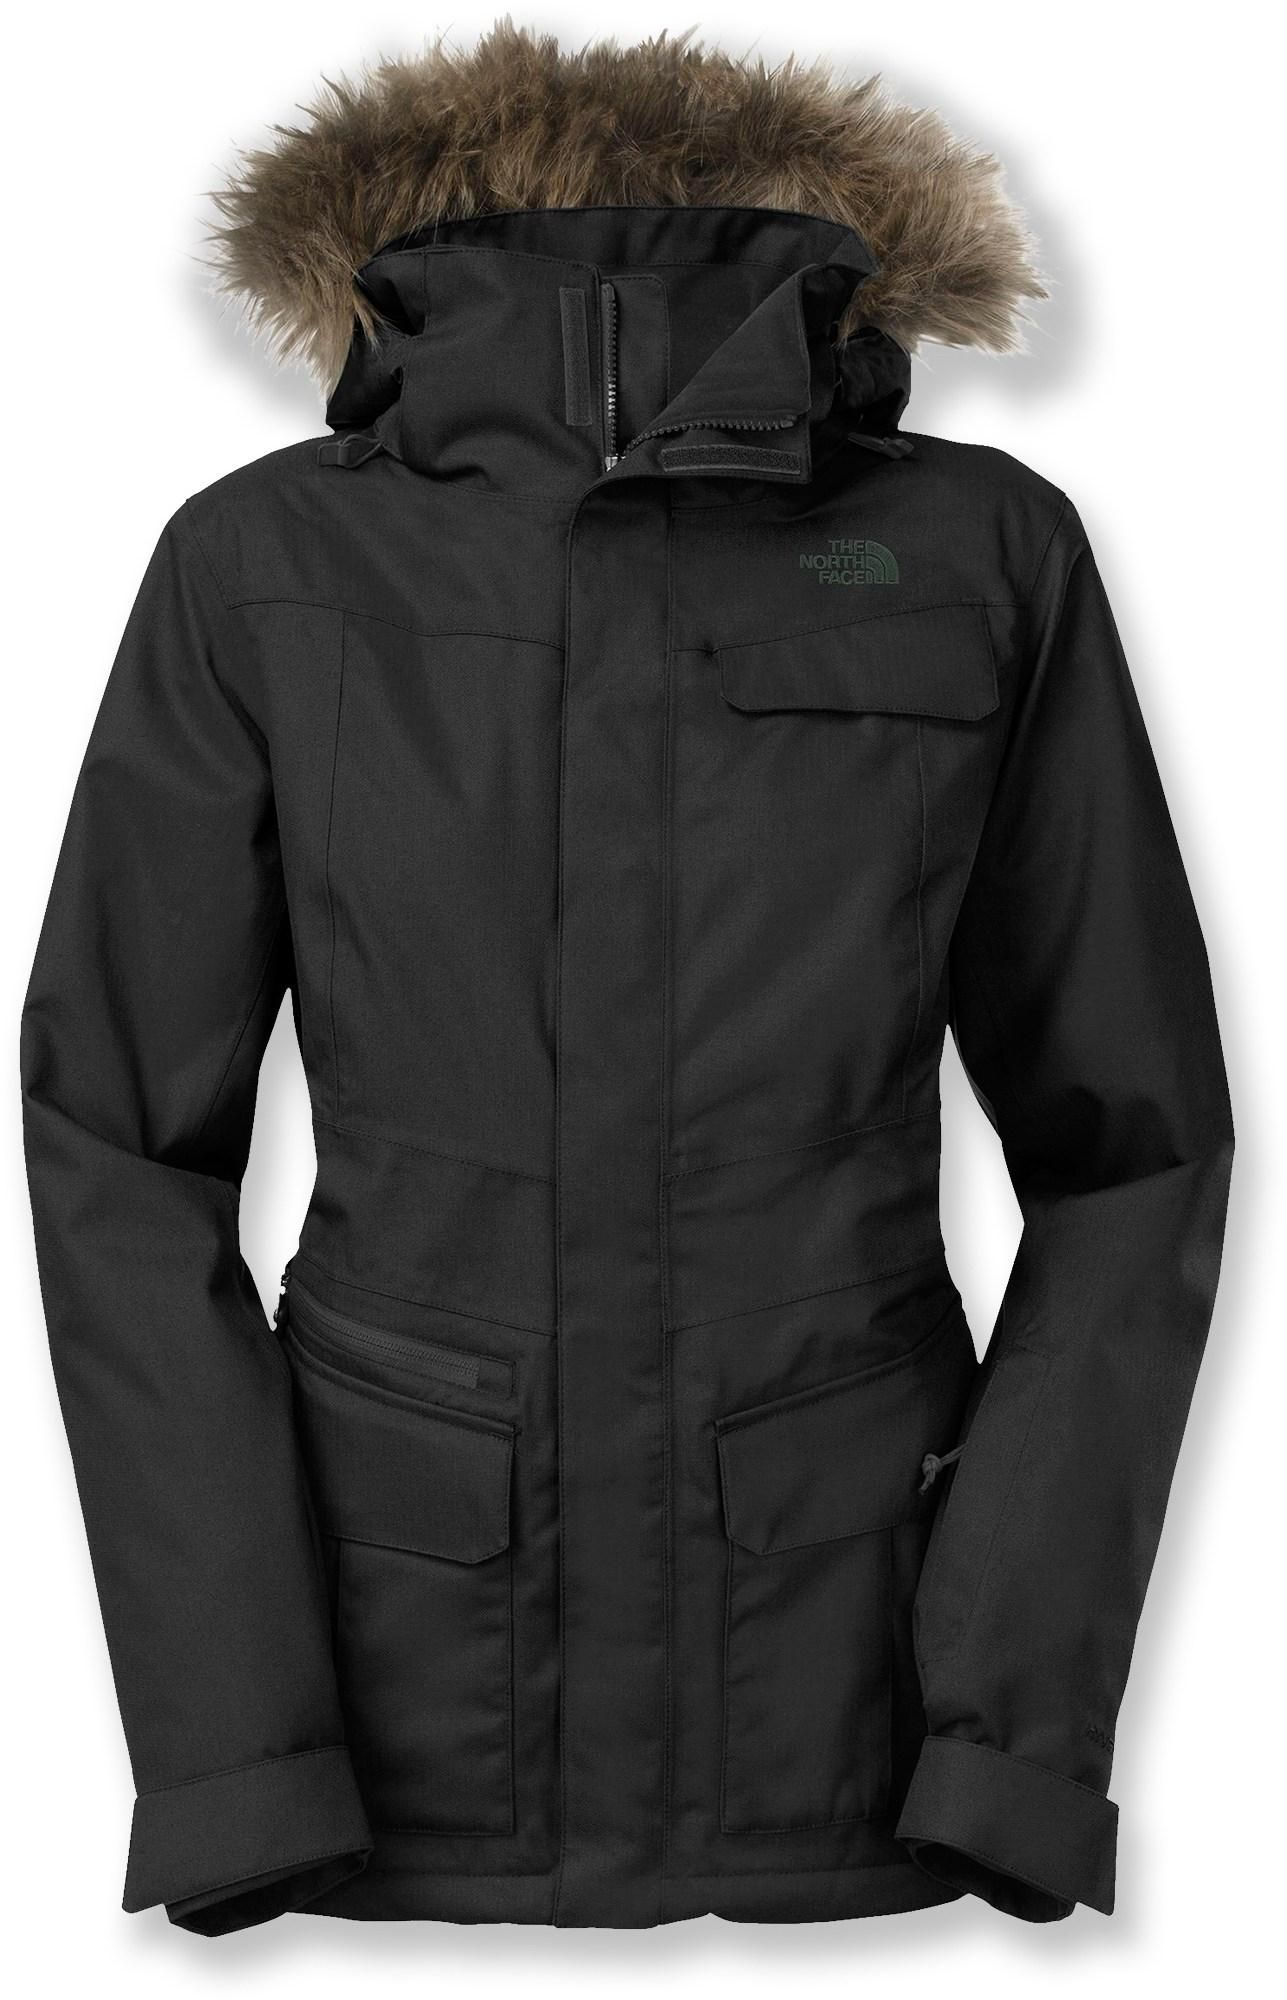 88e1b678d7 The North Face Baker Delux Insulated Jacket - Women s--For a brutal winter  in Boston